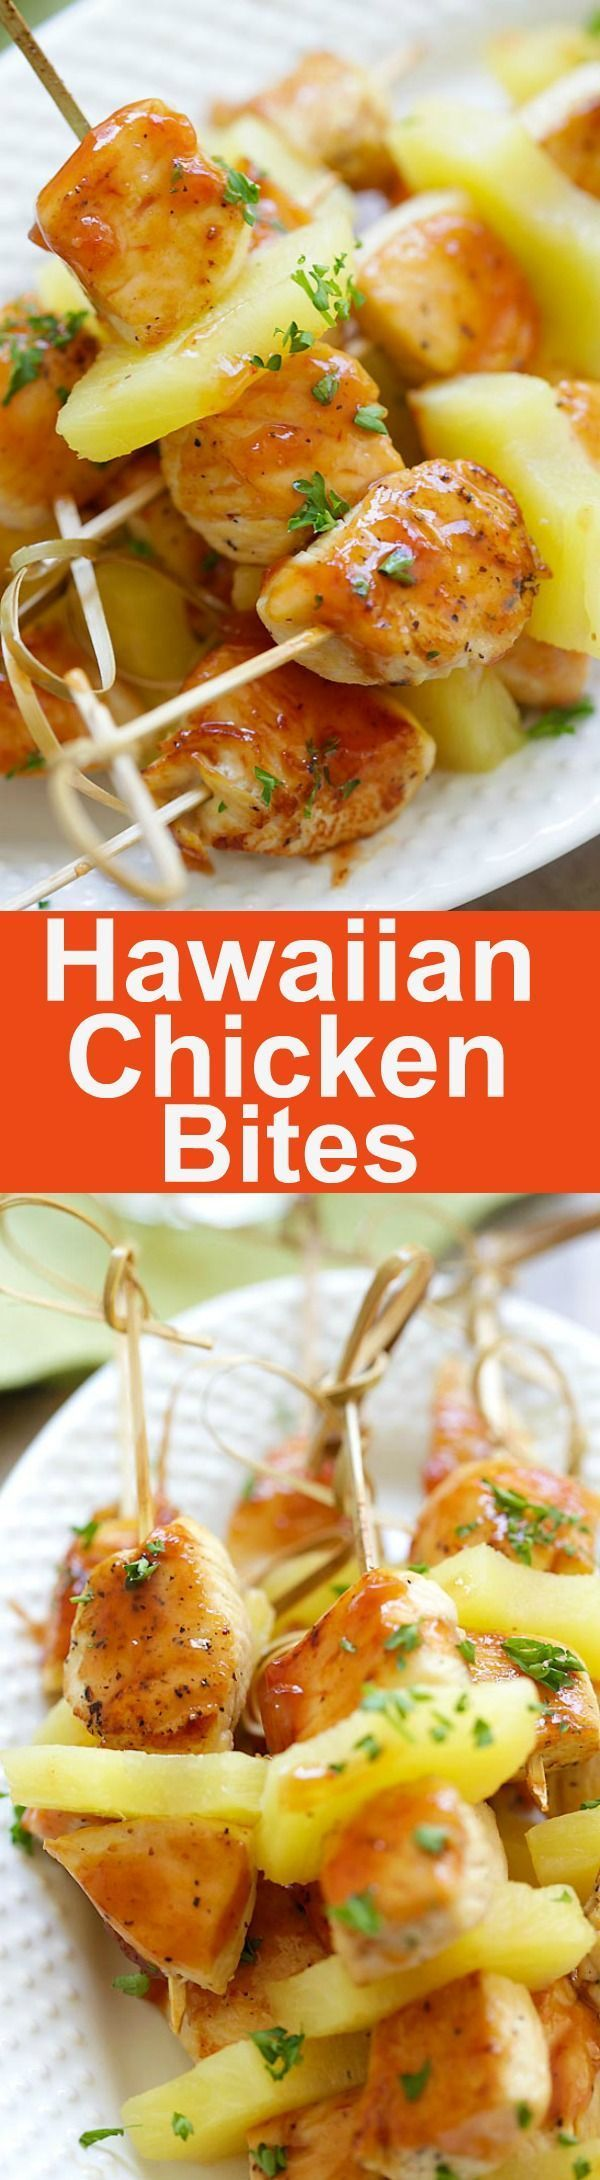 Hawaiian Chicken Bites – amazing chicken skewers with pineapple with Hawaiian BBQ sauce. This recipe is so easy and a crowd pleaser   http://rasamalaysia.com